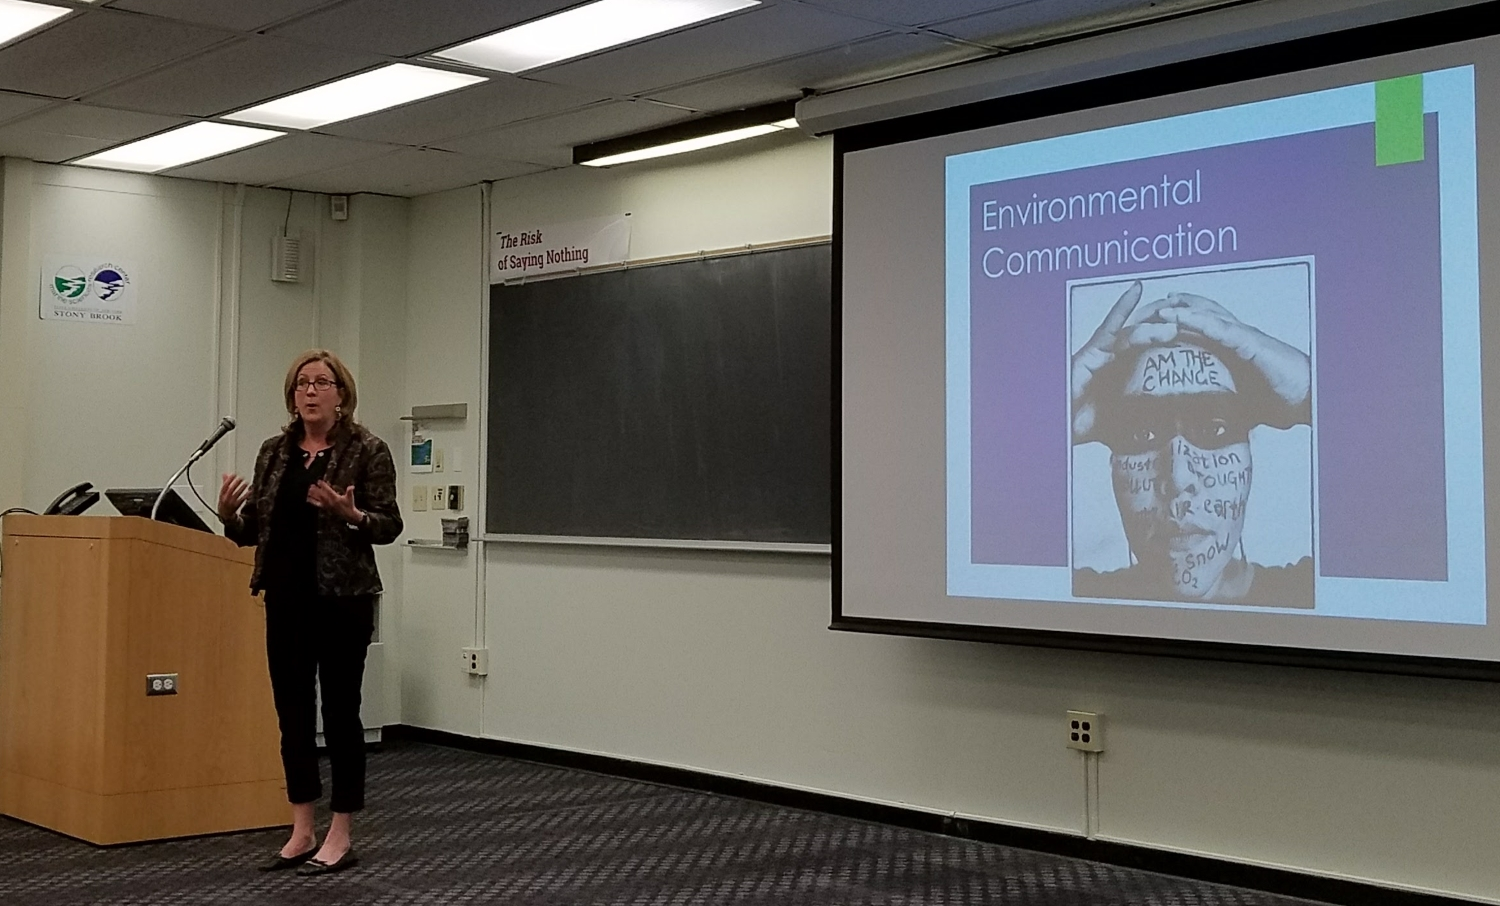 Sustainability Studies Director Heidi Hutner discusses the variety of ways to use media for environmental communications